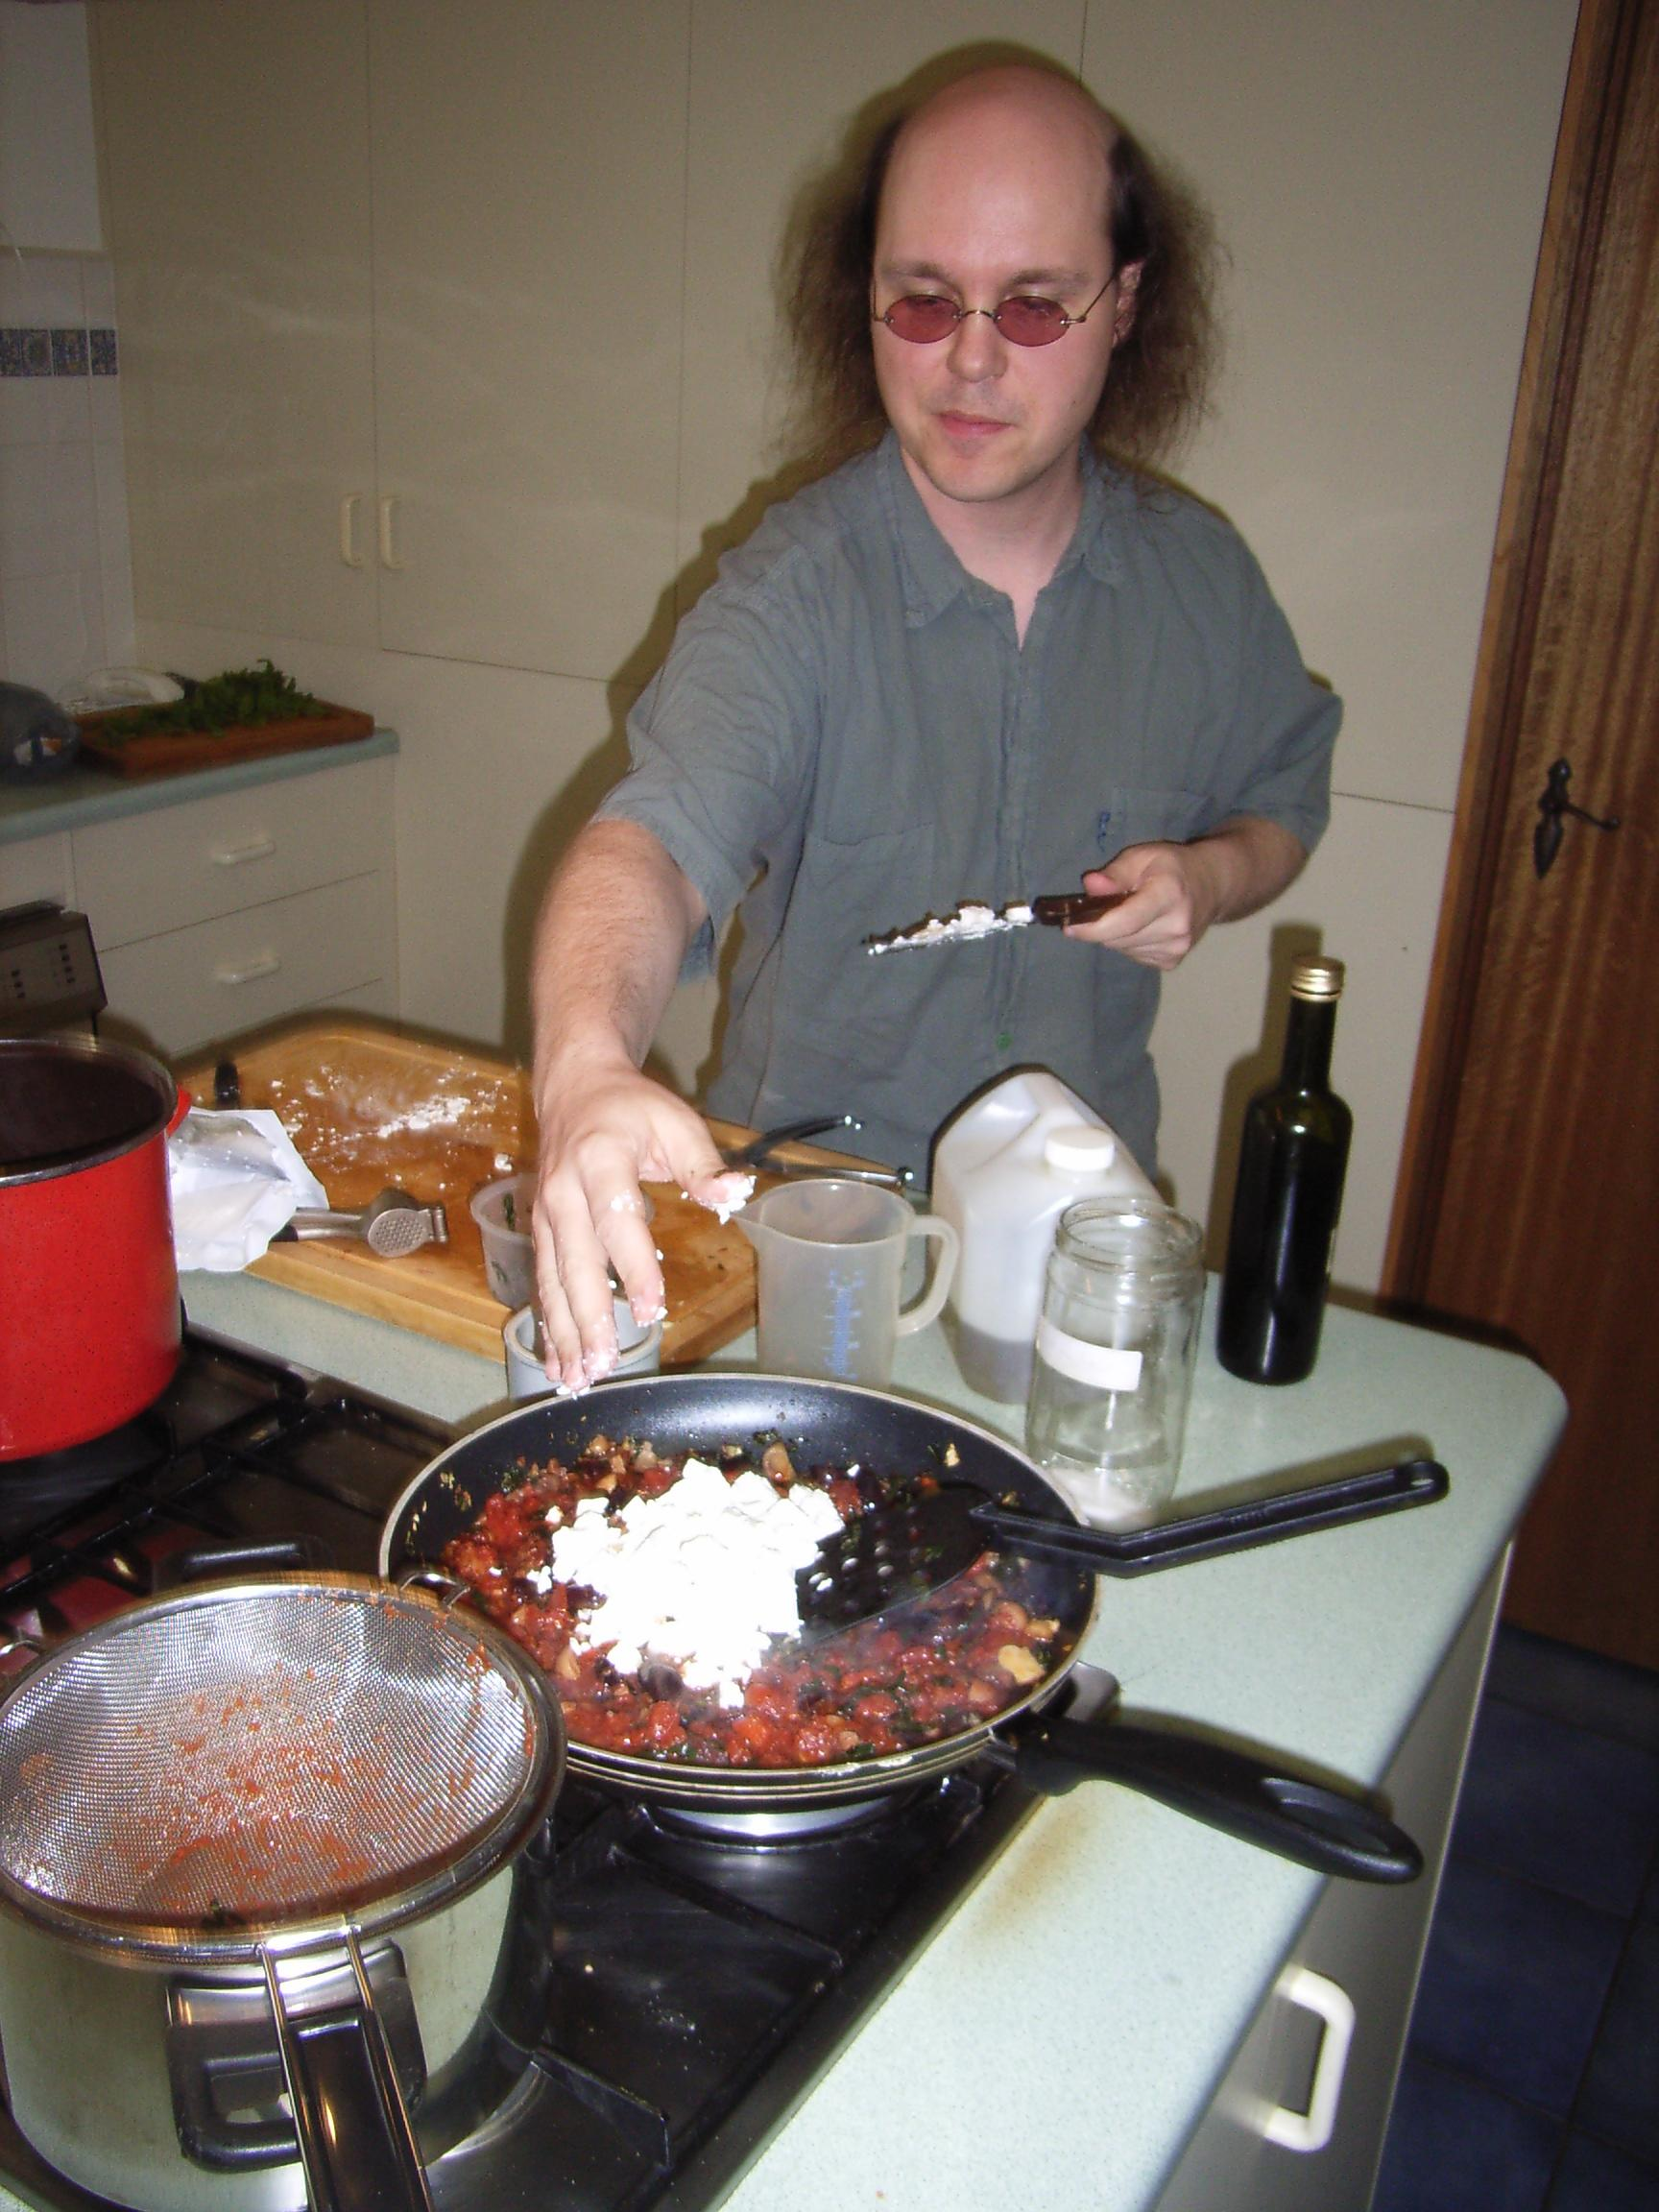 Brian-cooking-3.jpeg